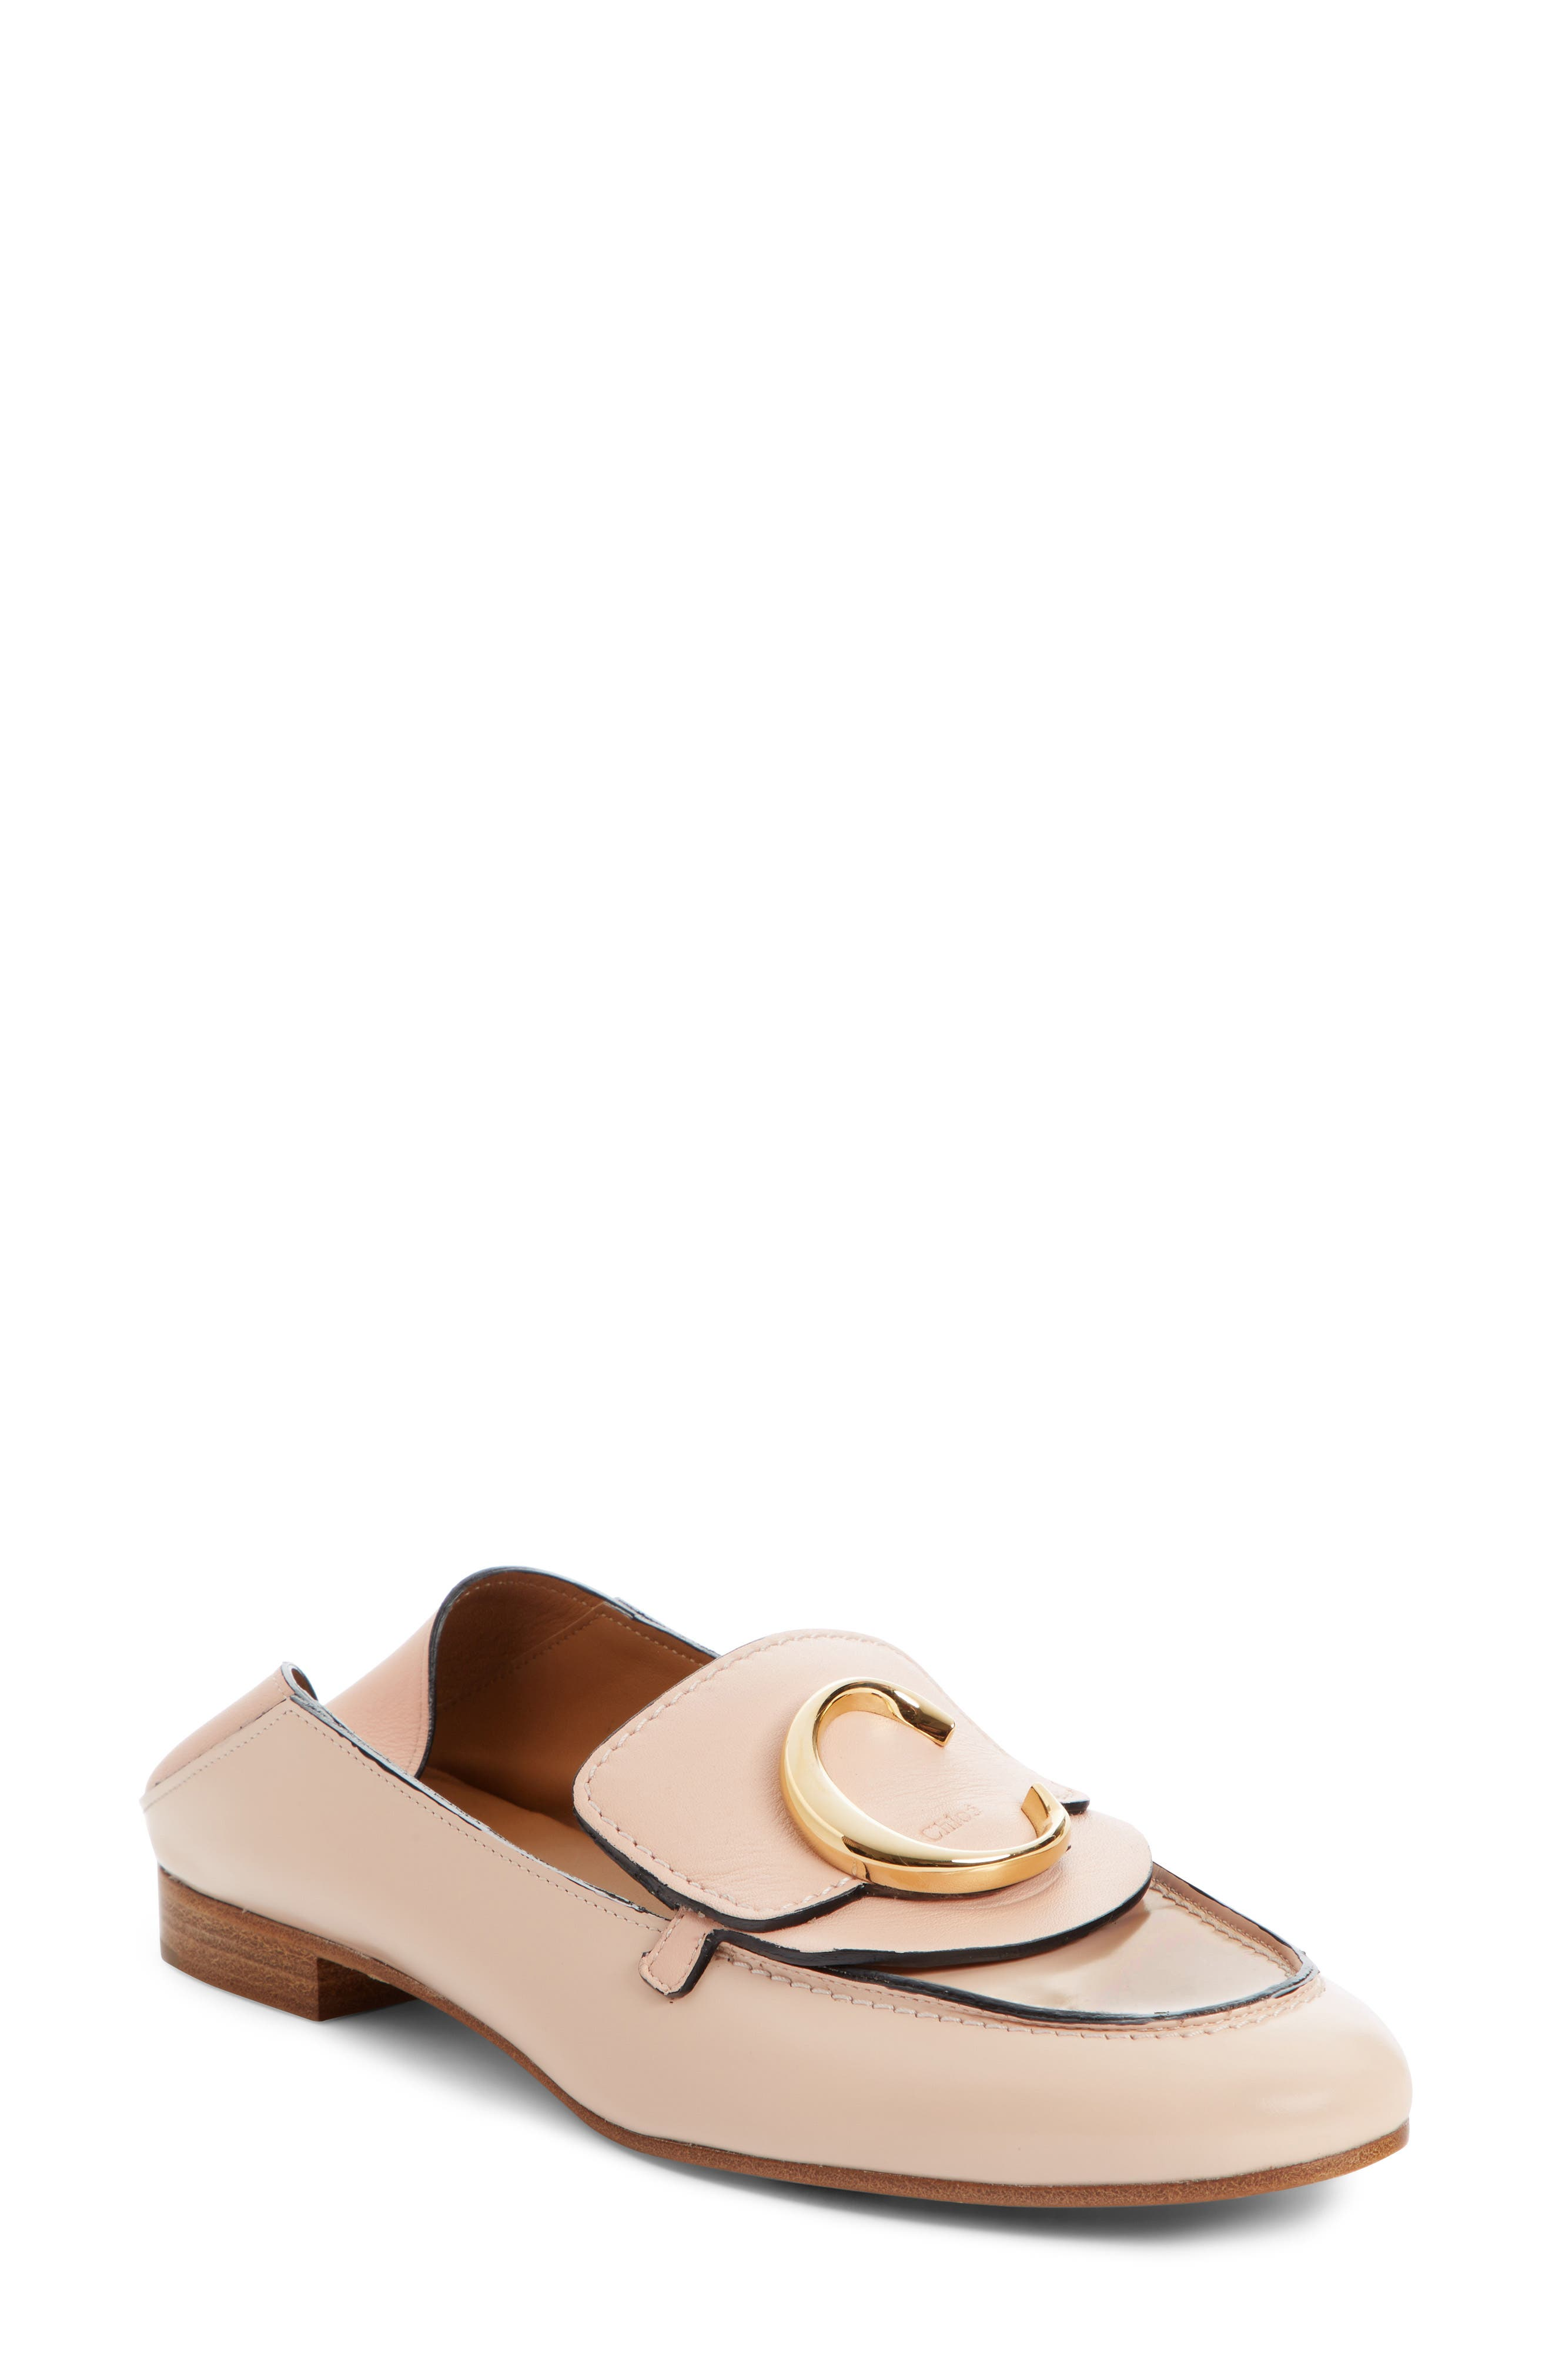 Chloe Story Convertible Loafer, Pink